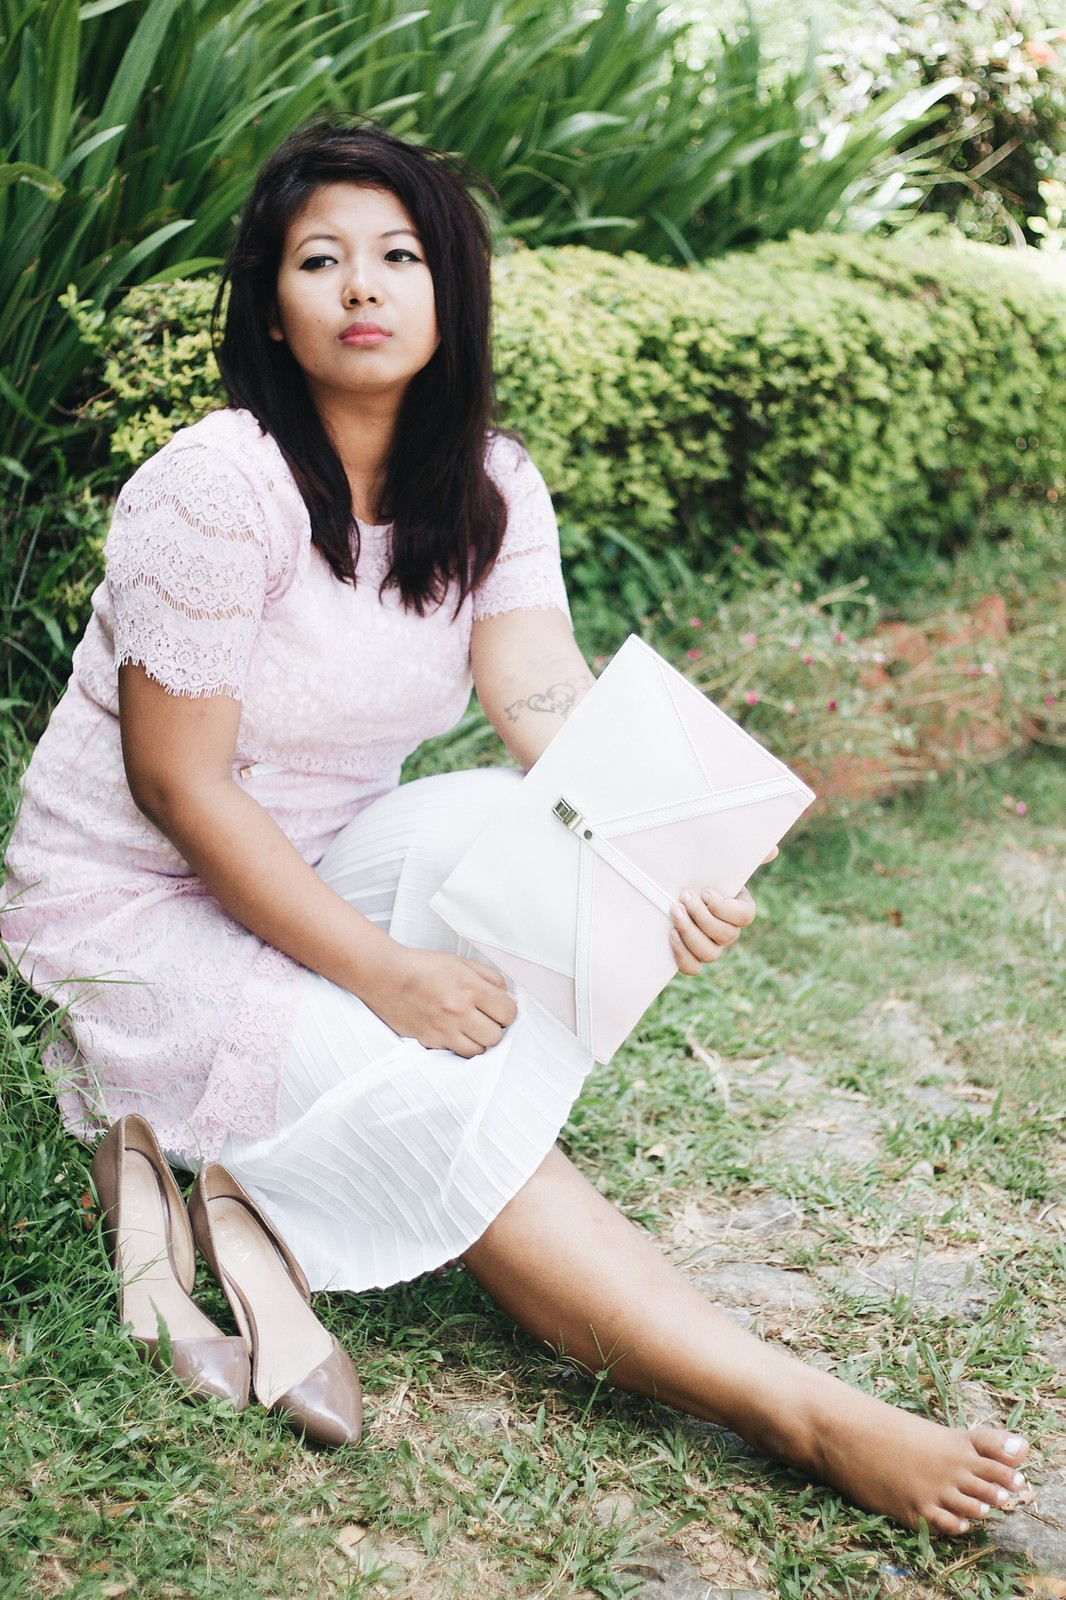 SelestyMe by Chayanika Rabha in collaboration with StyleWe.com wearing Stalkbylove clutch and Jabong heels